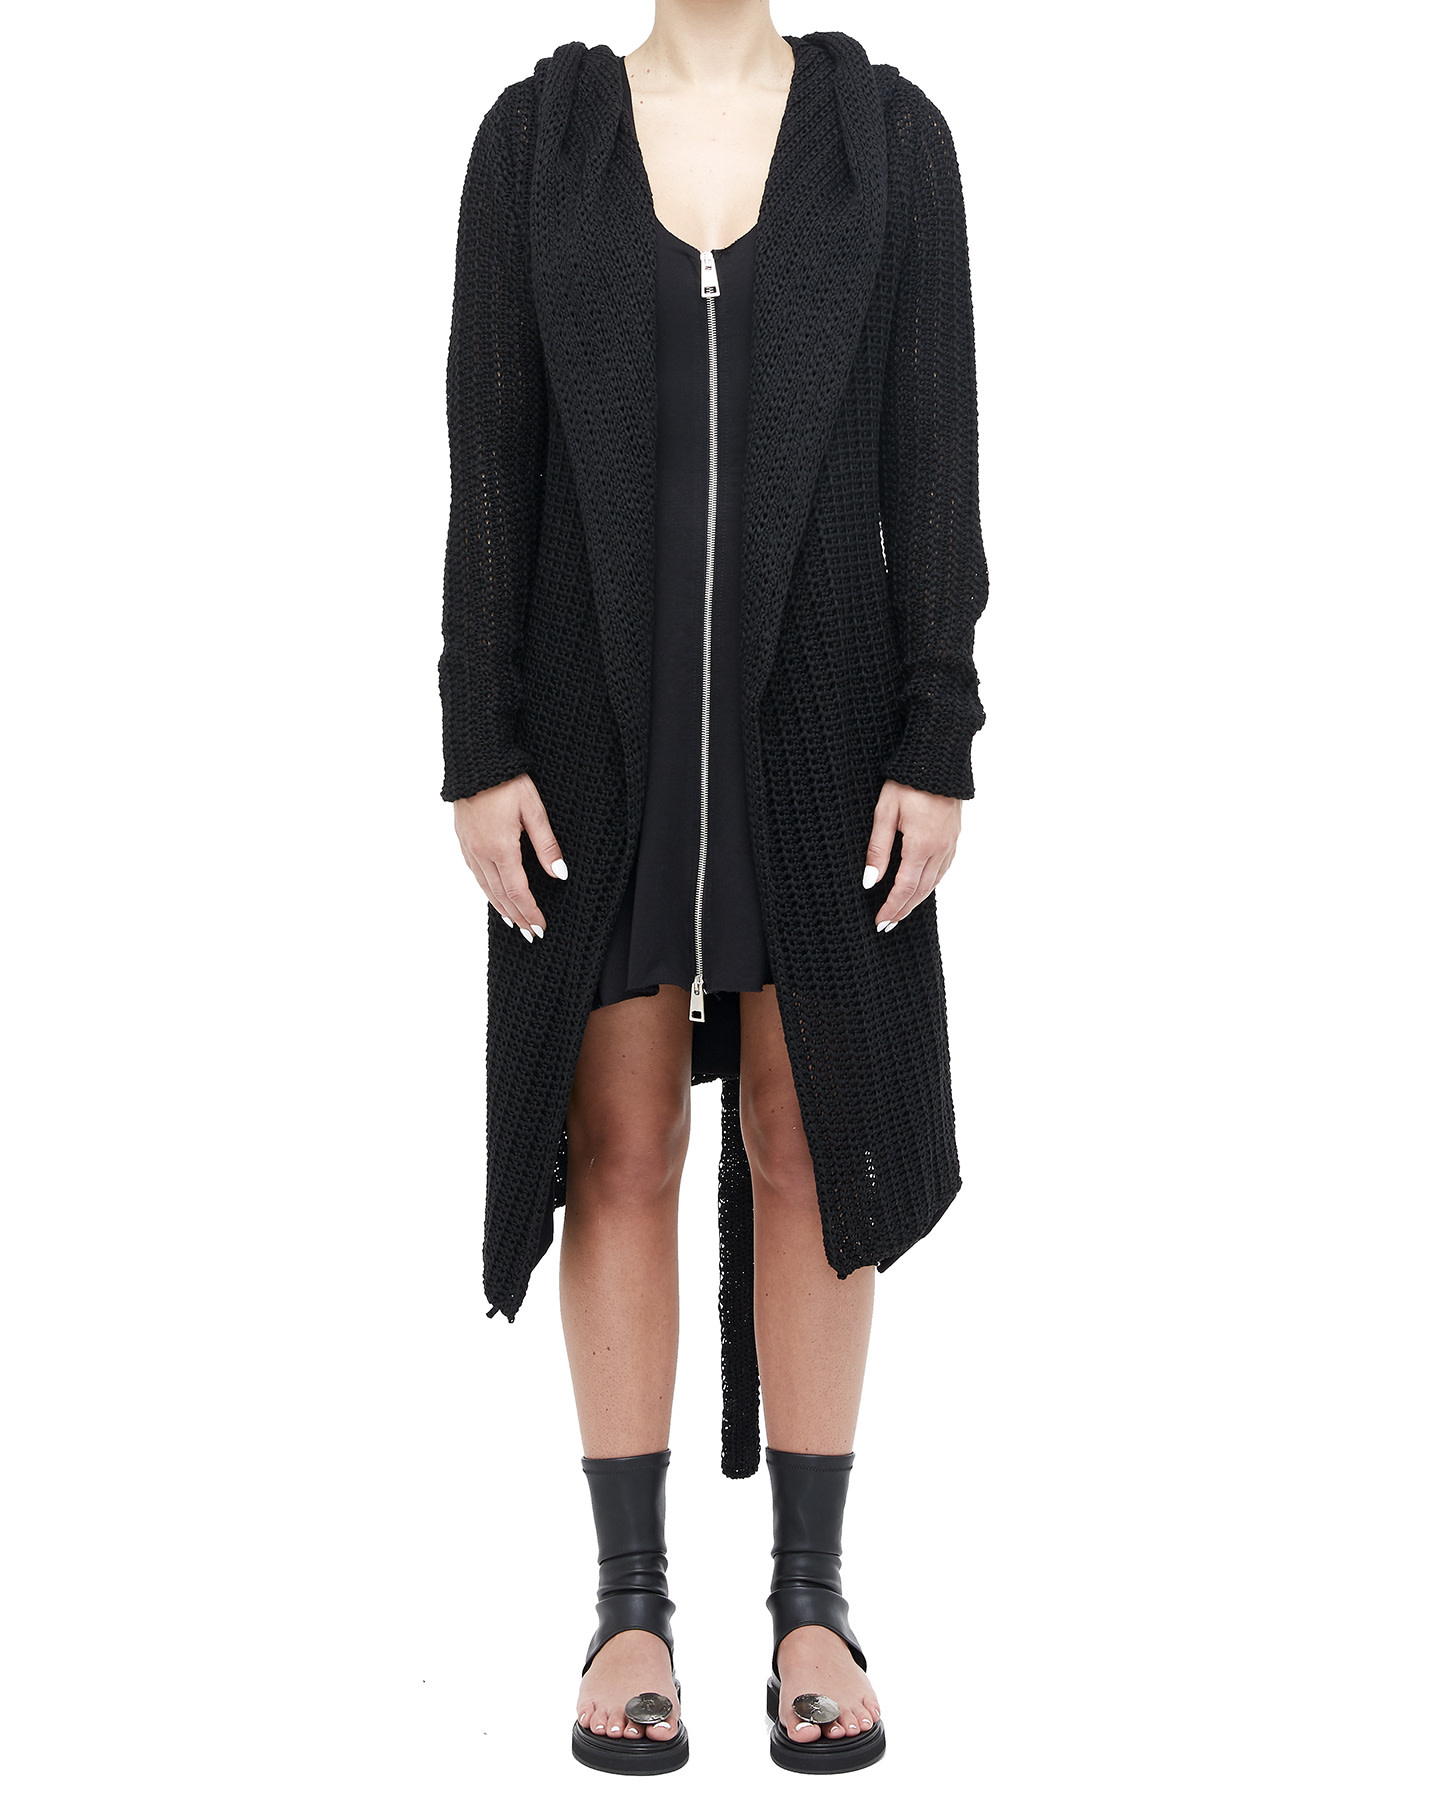 HOODED KNIT CARDIGAN WITH BELT